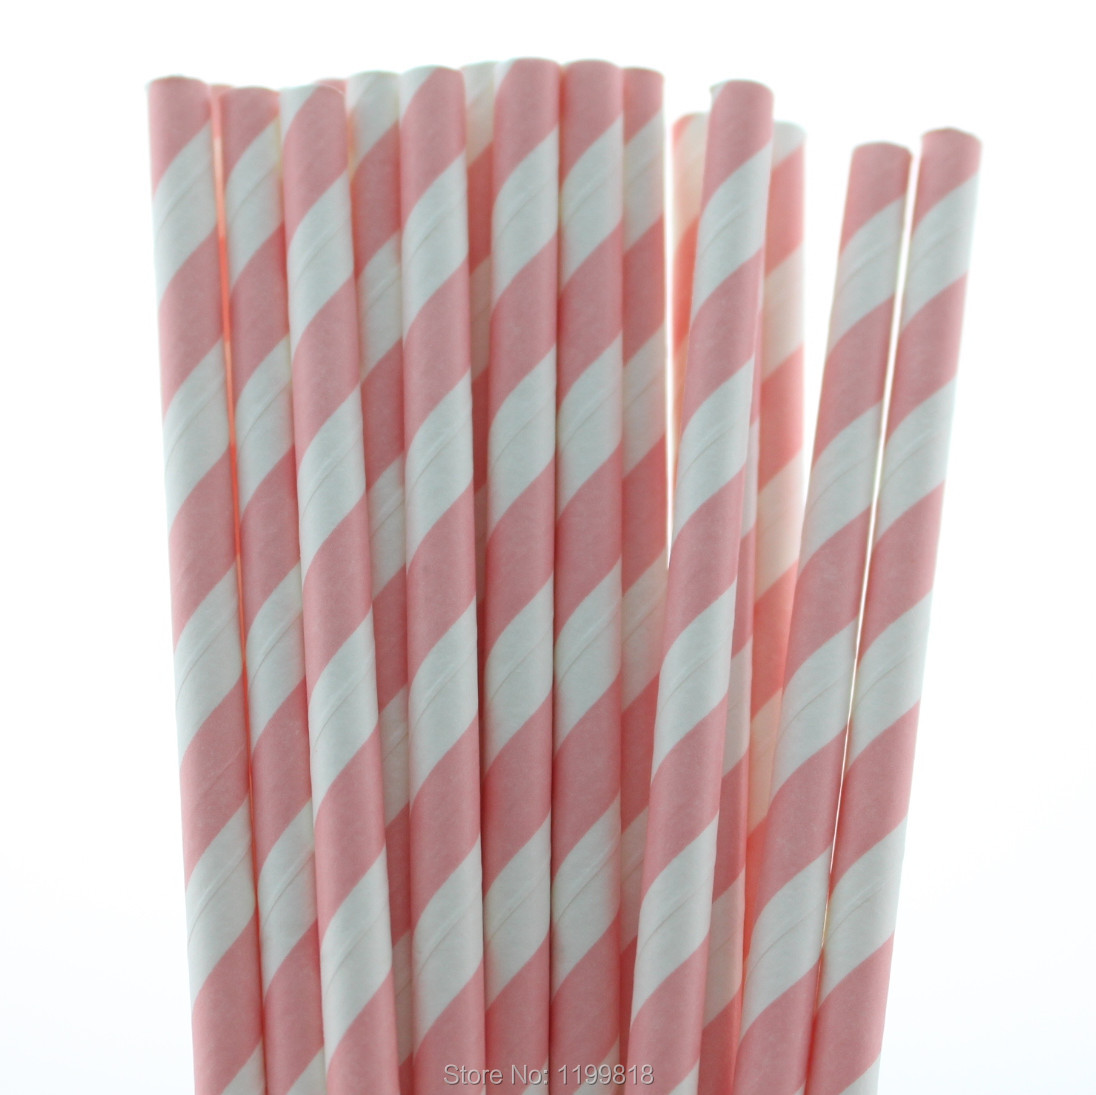 Pink Striped Party Tableware Set Disposable Paper Cups Straws Wedding Decor Party Paper Napkins Paper Plates-in Disposable Party Tableware from Home ...  sc 1 st  AliExpress.com & Pink Striped Party Tableware Set Disposable Paper Cups Straws ...